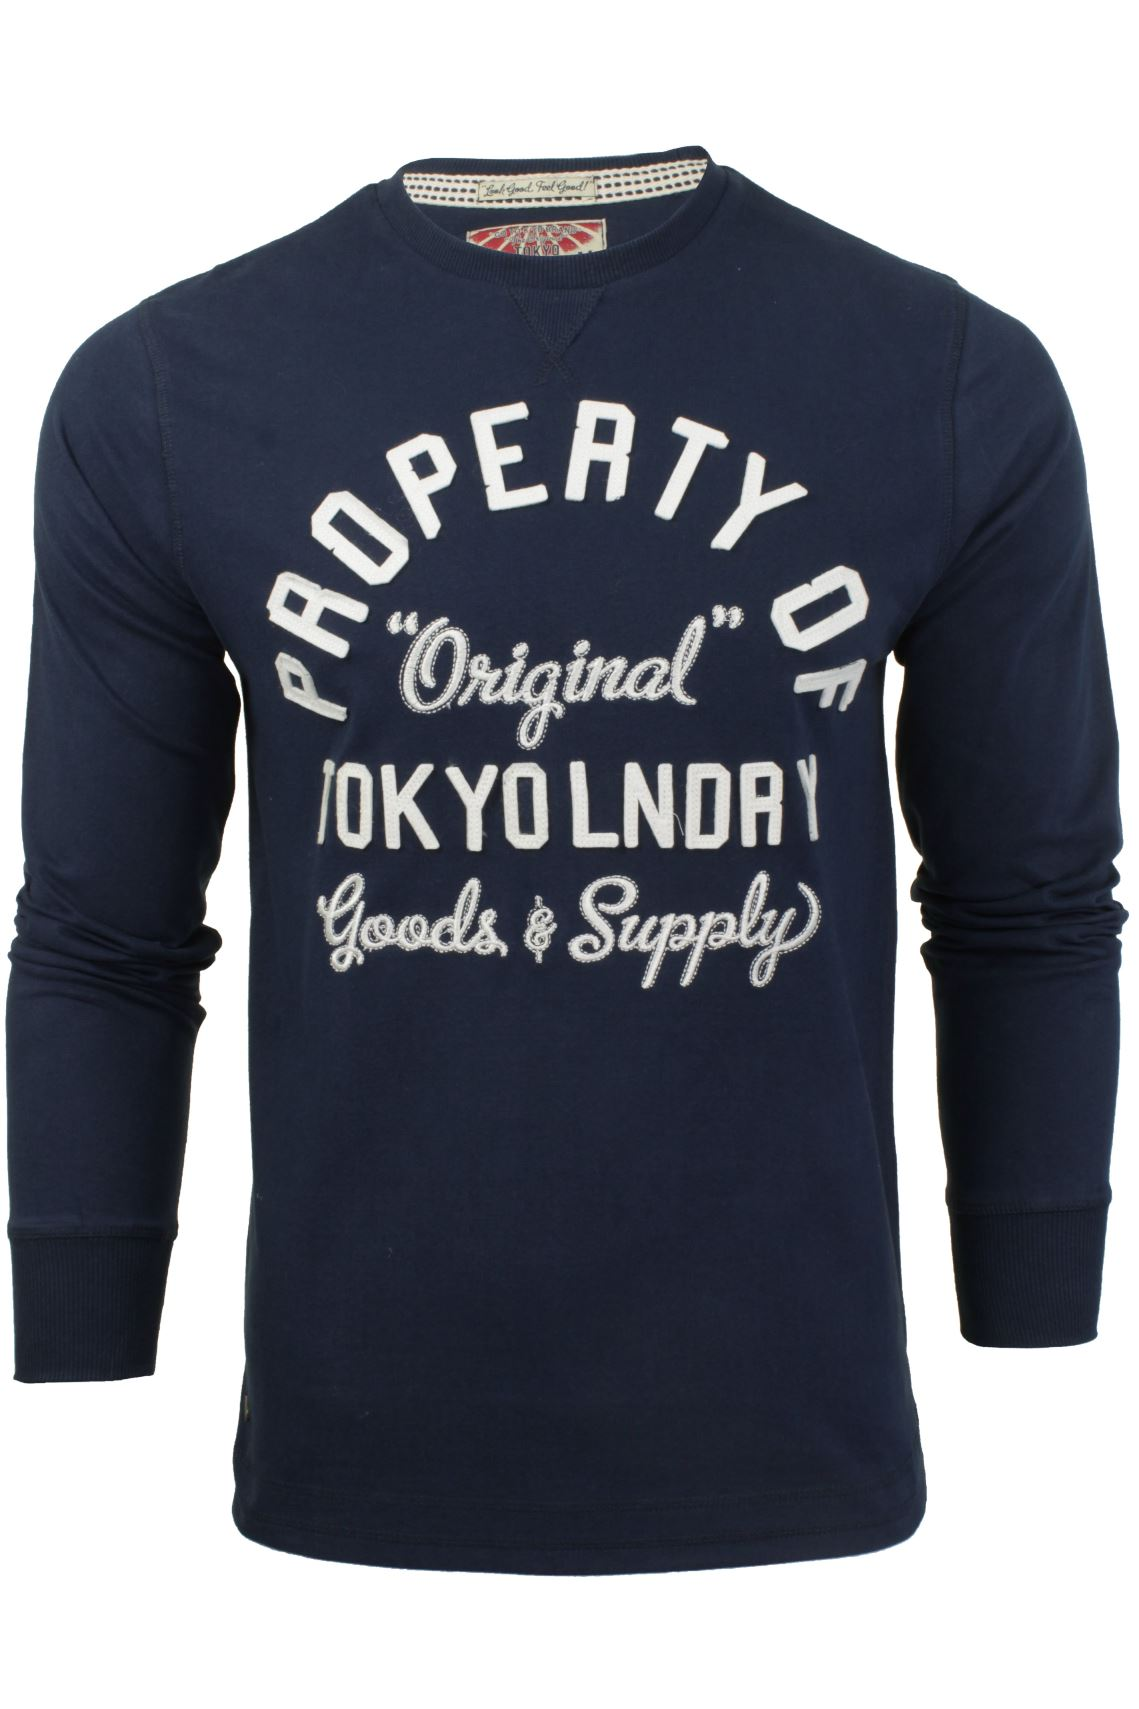 Mens Long Sleeved T-Shirt/ Top by Tokyo Laundry-Main Image